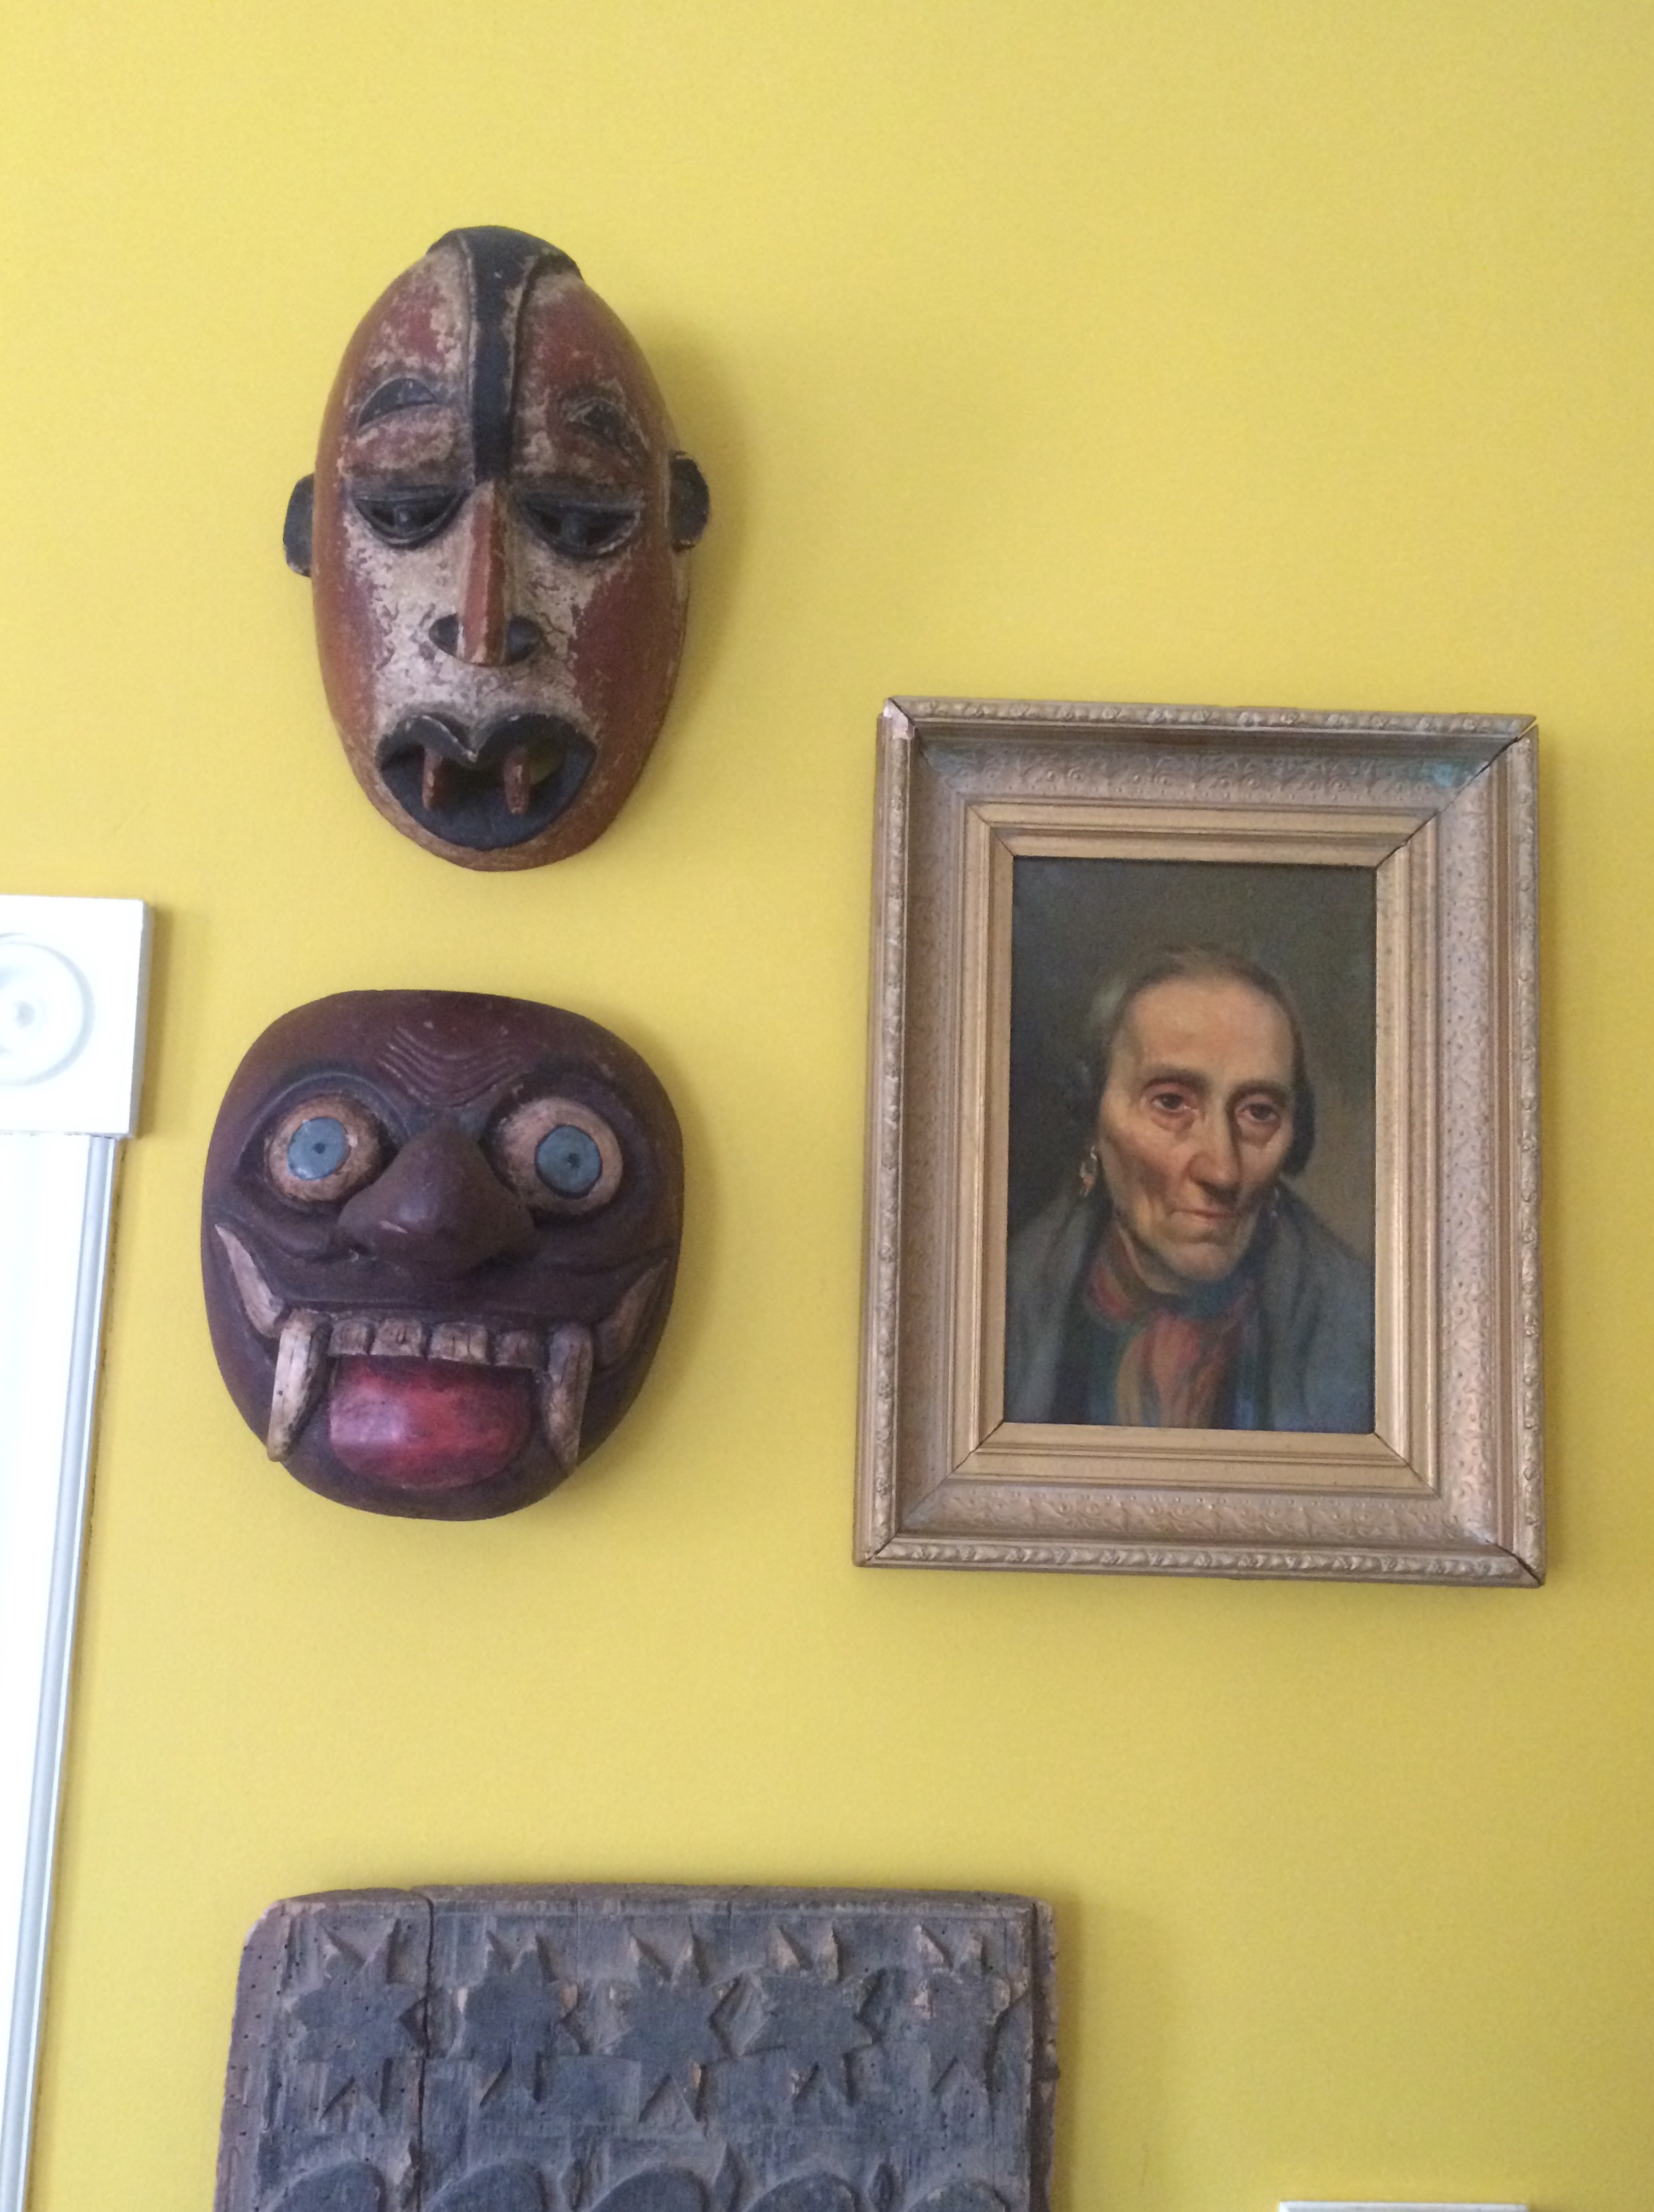 Item: Tribal masks and portrait